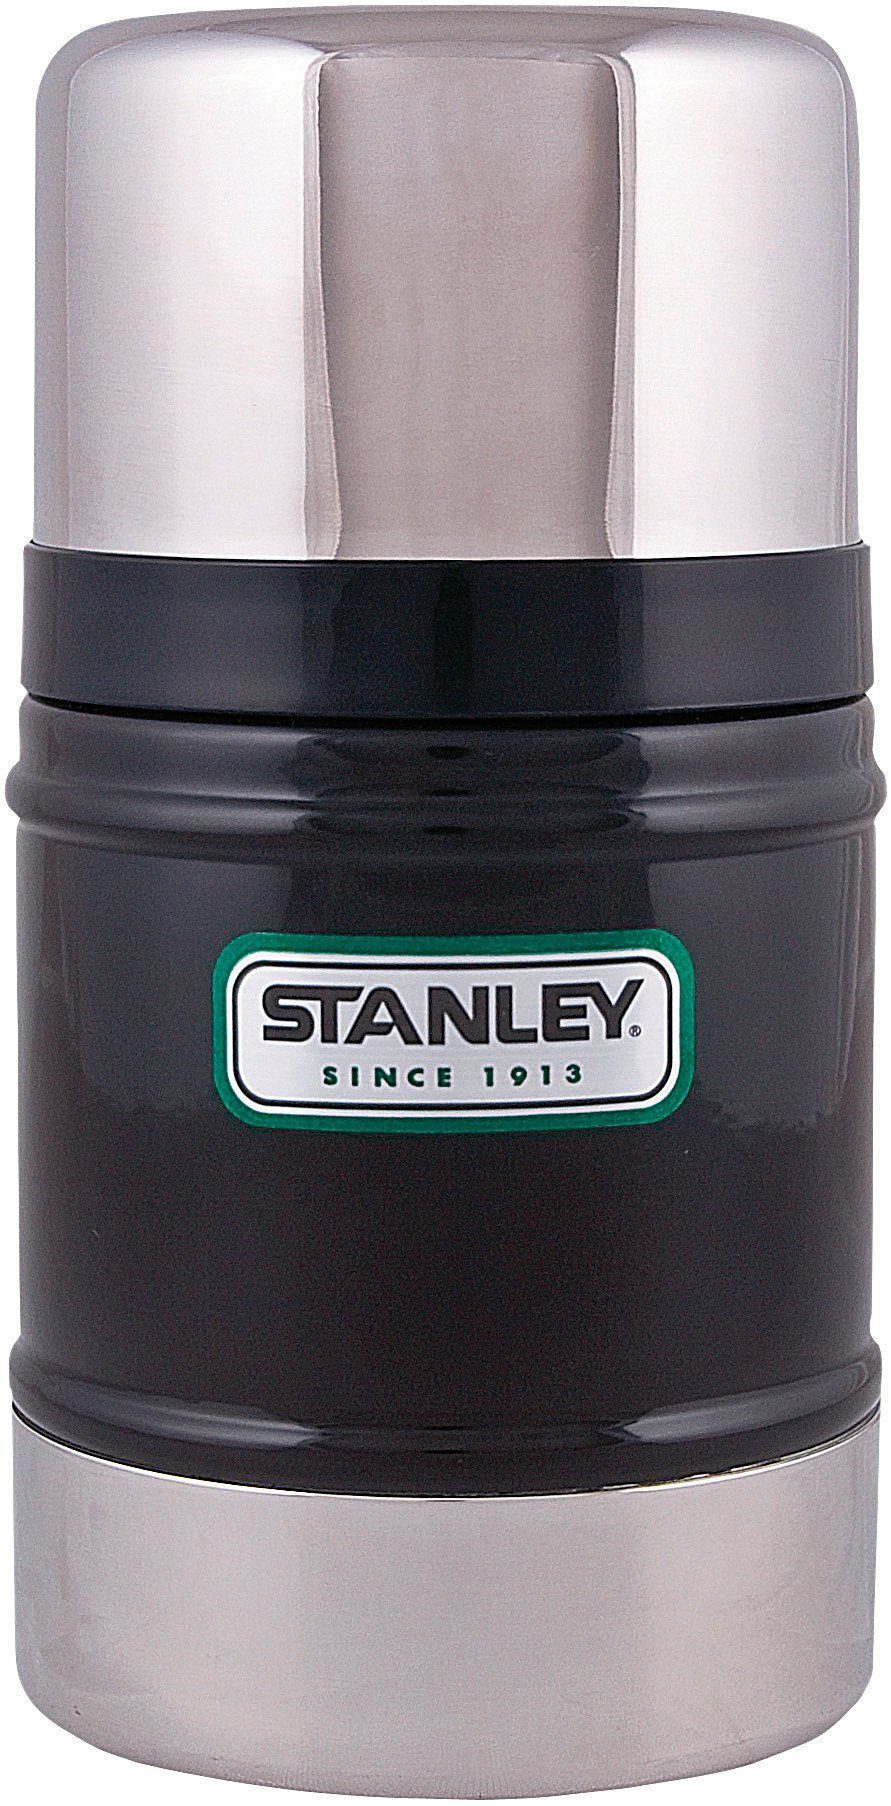 STANLEY Trinkflasche »Classic Food-Container 500ml«